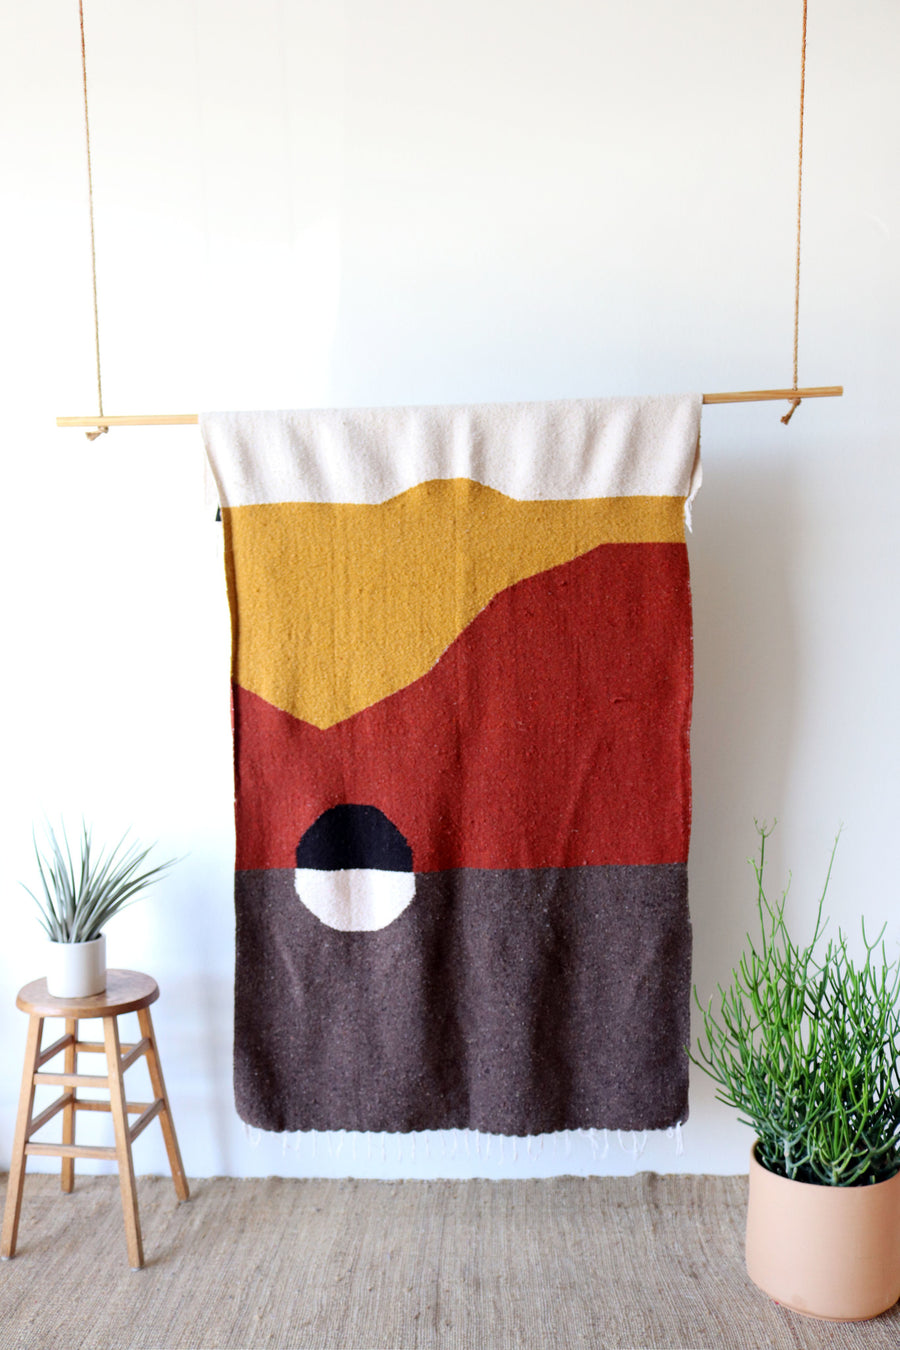 Death Valley Design // Handwoven Blanket